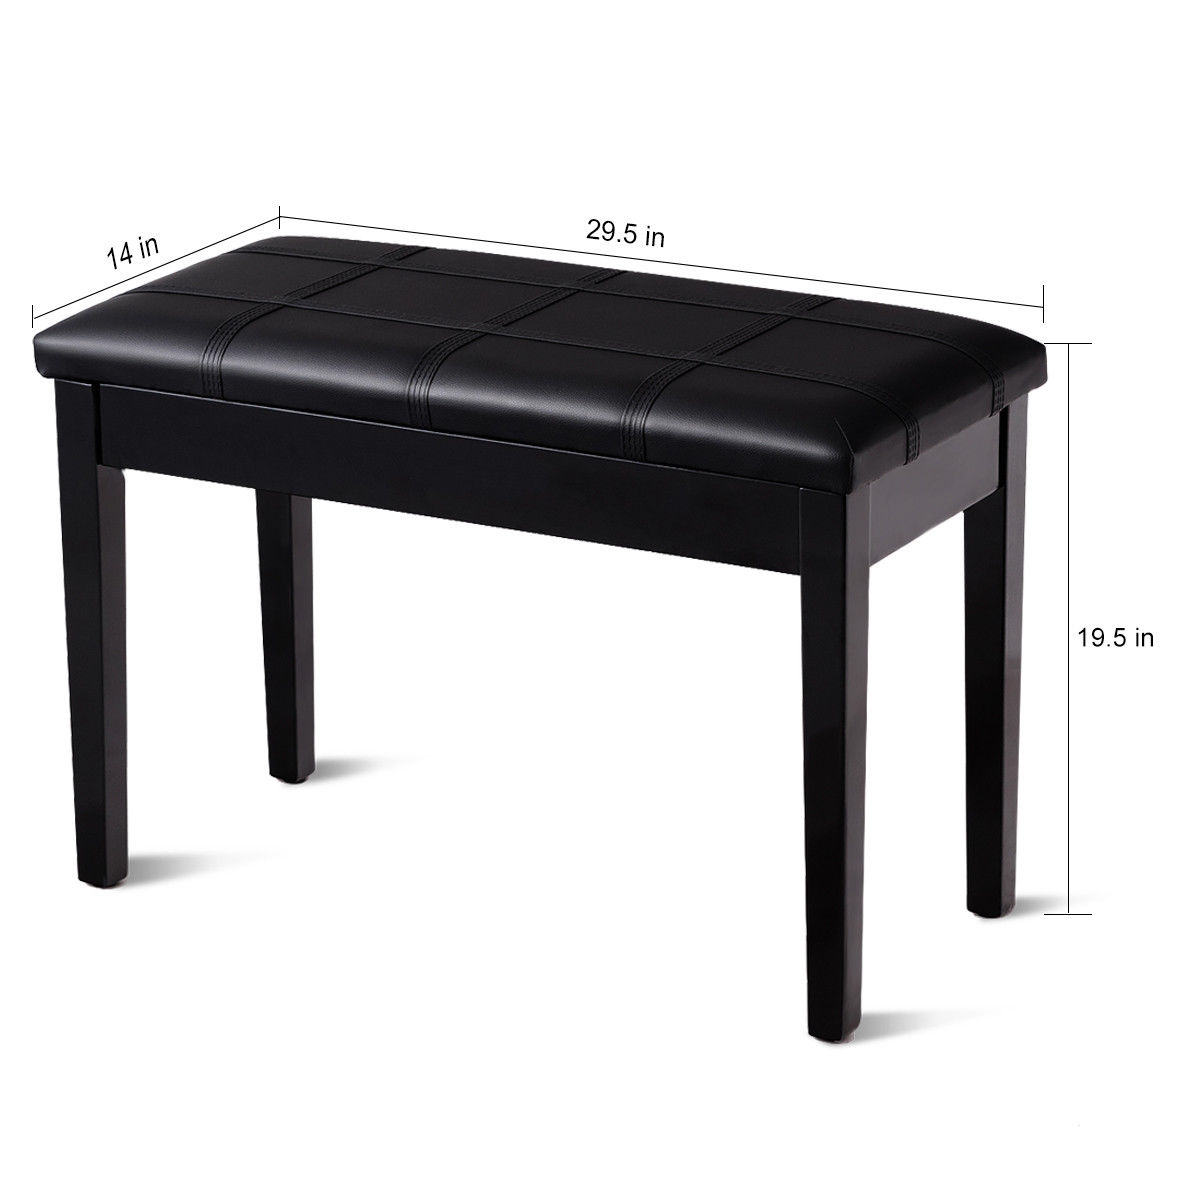 Solid Wood PU Leather Piano Double Duet Keyboard Bench